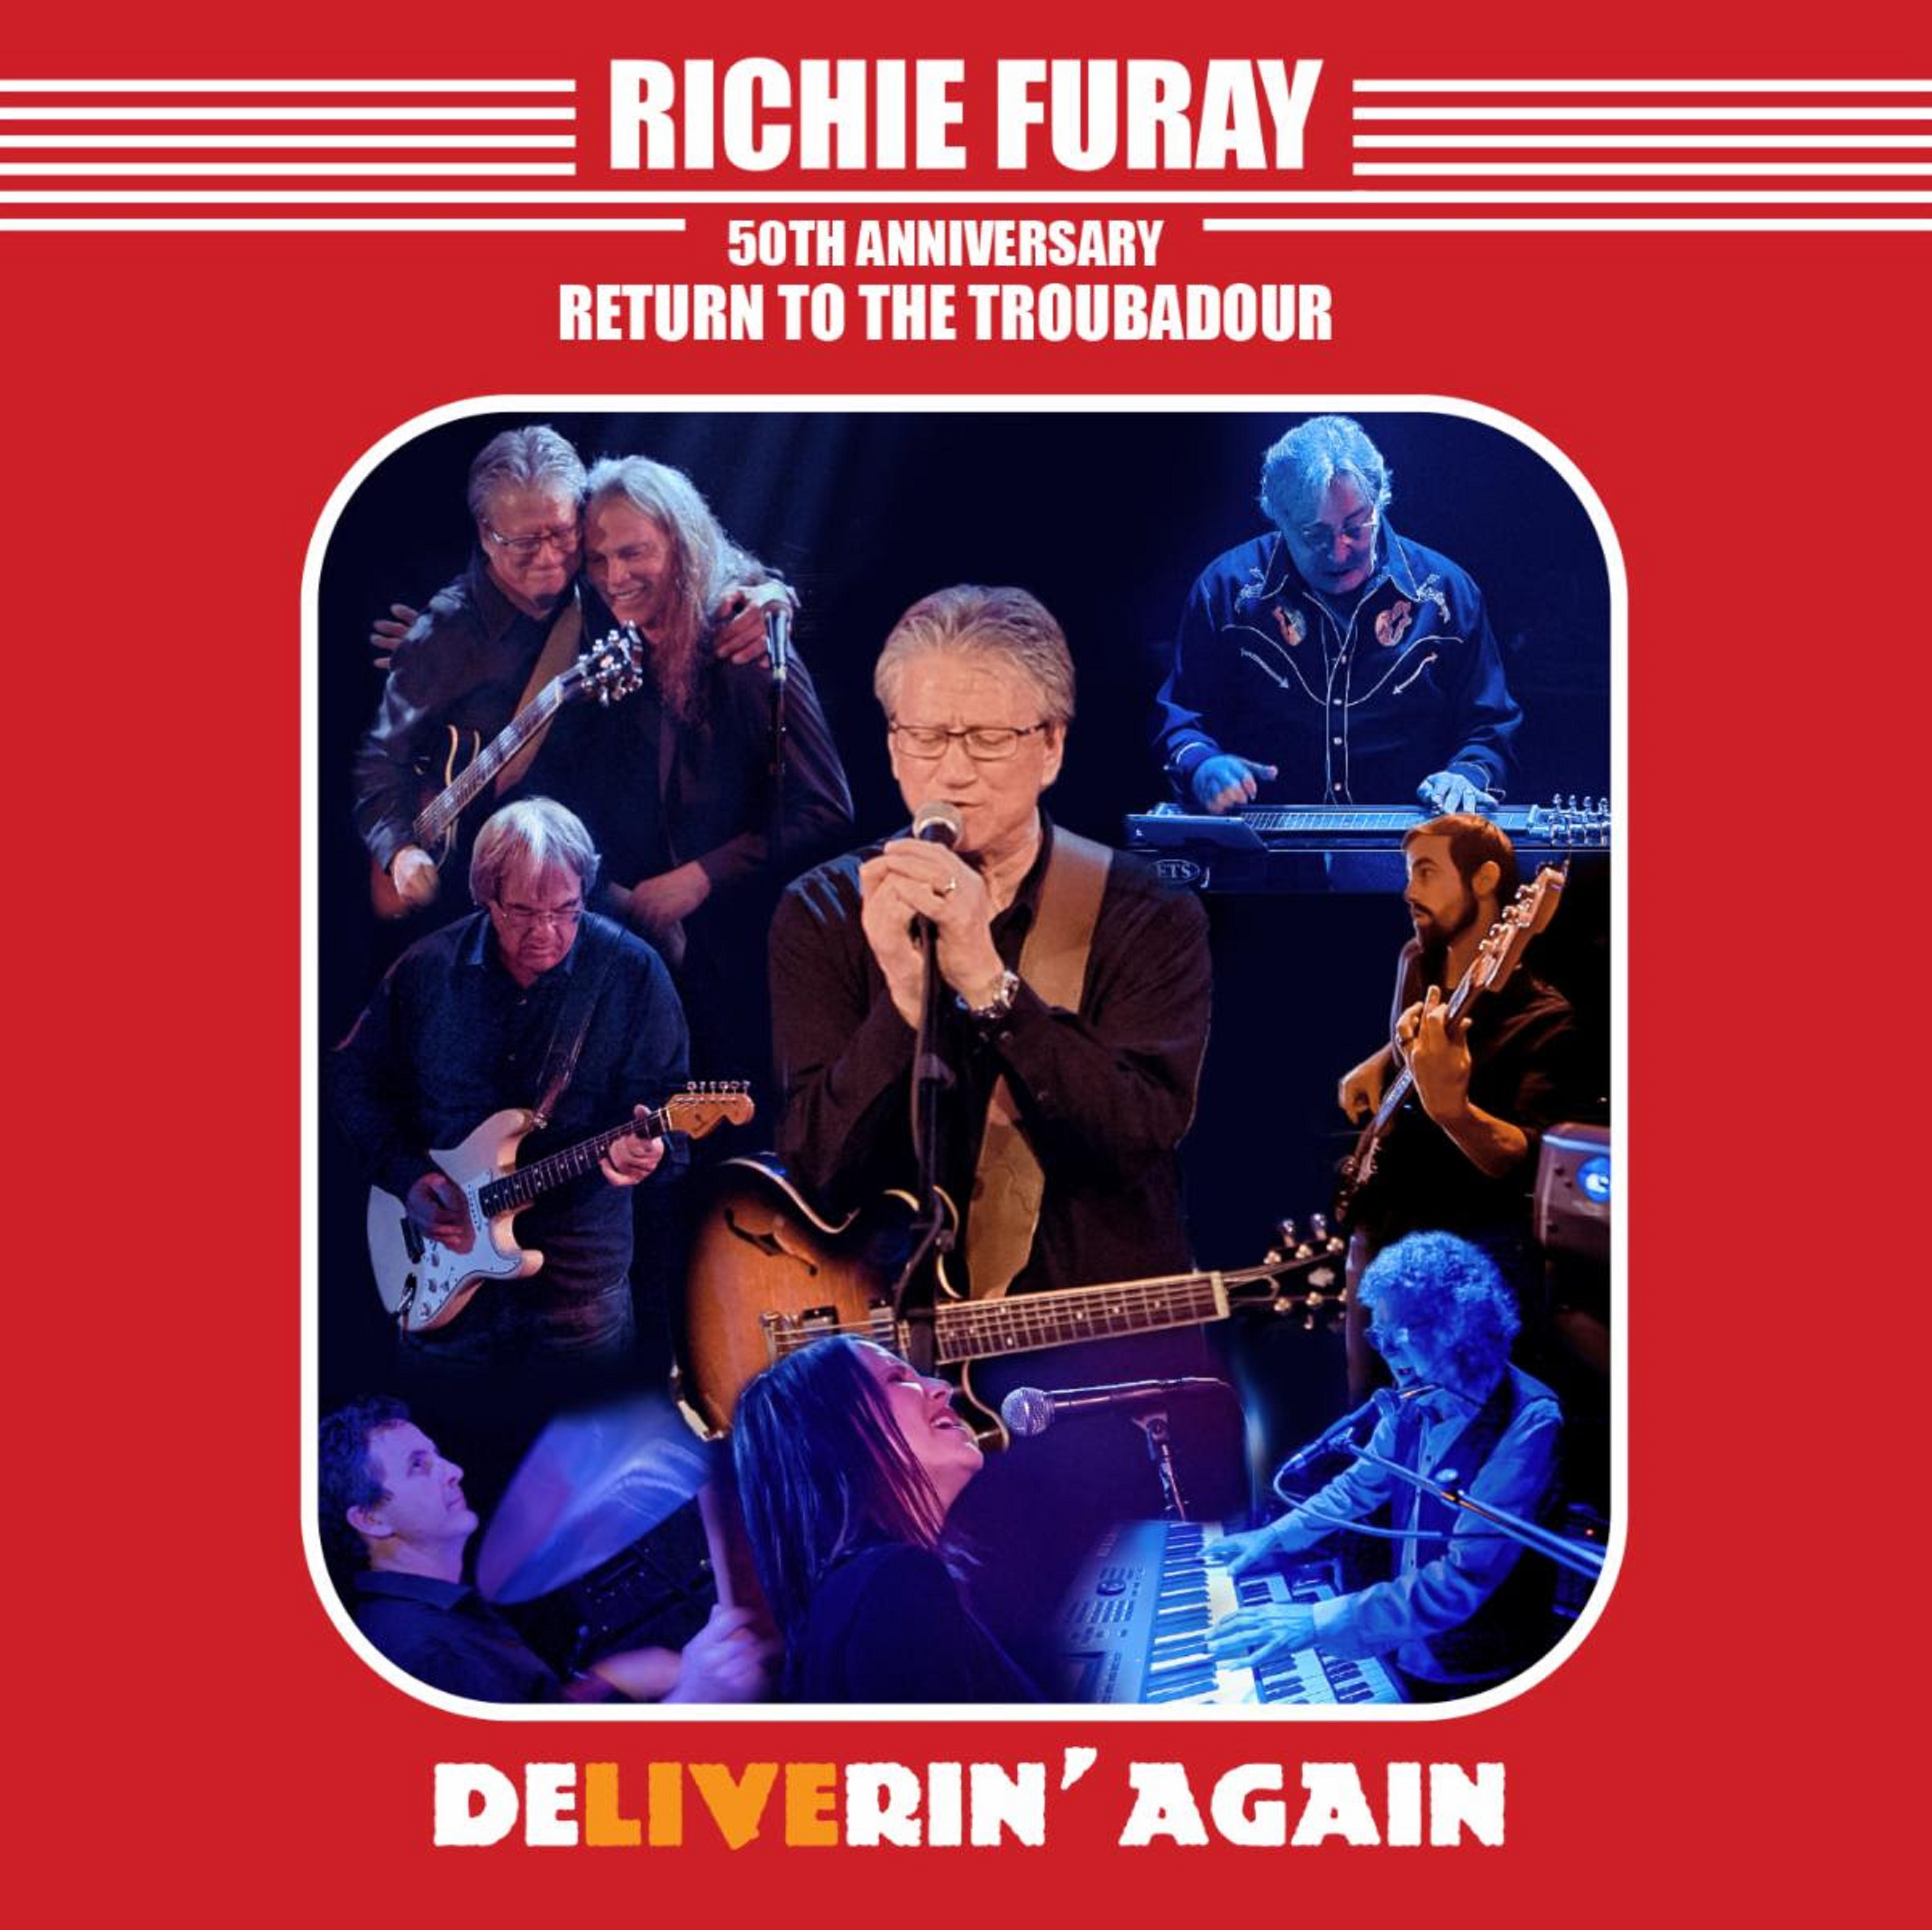 RICHIE FURAY Tomorrow (4/2) Releases Double Live Album '50TH ANNIVERSARY RETURN TO THE TROUBADOUR'